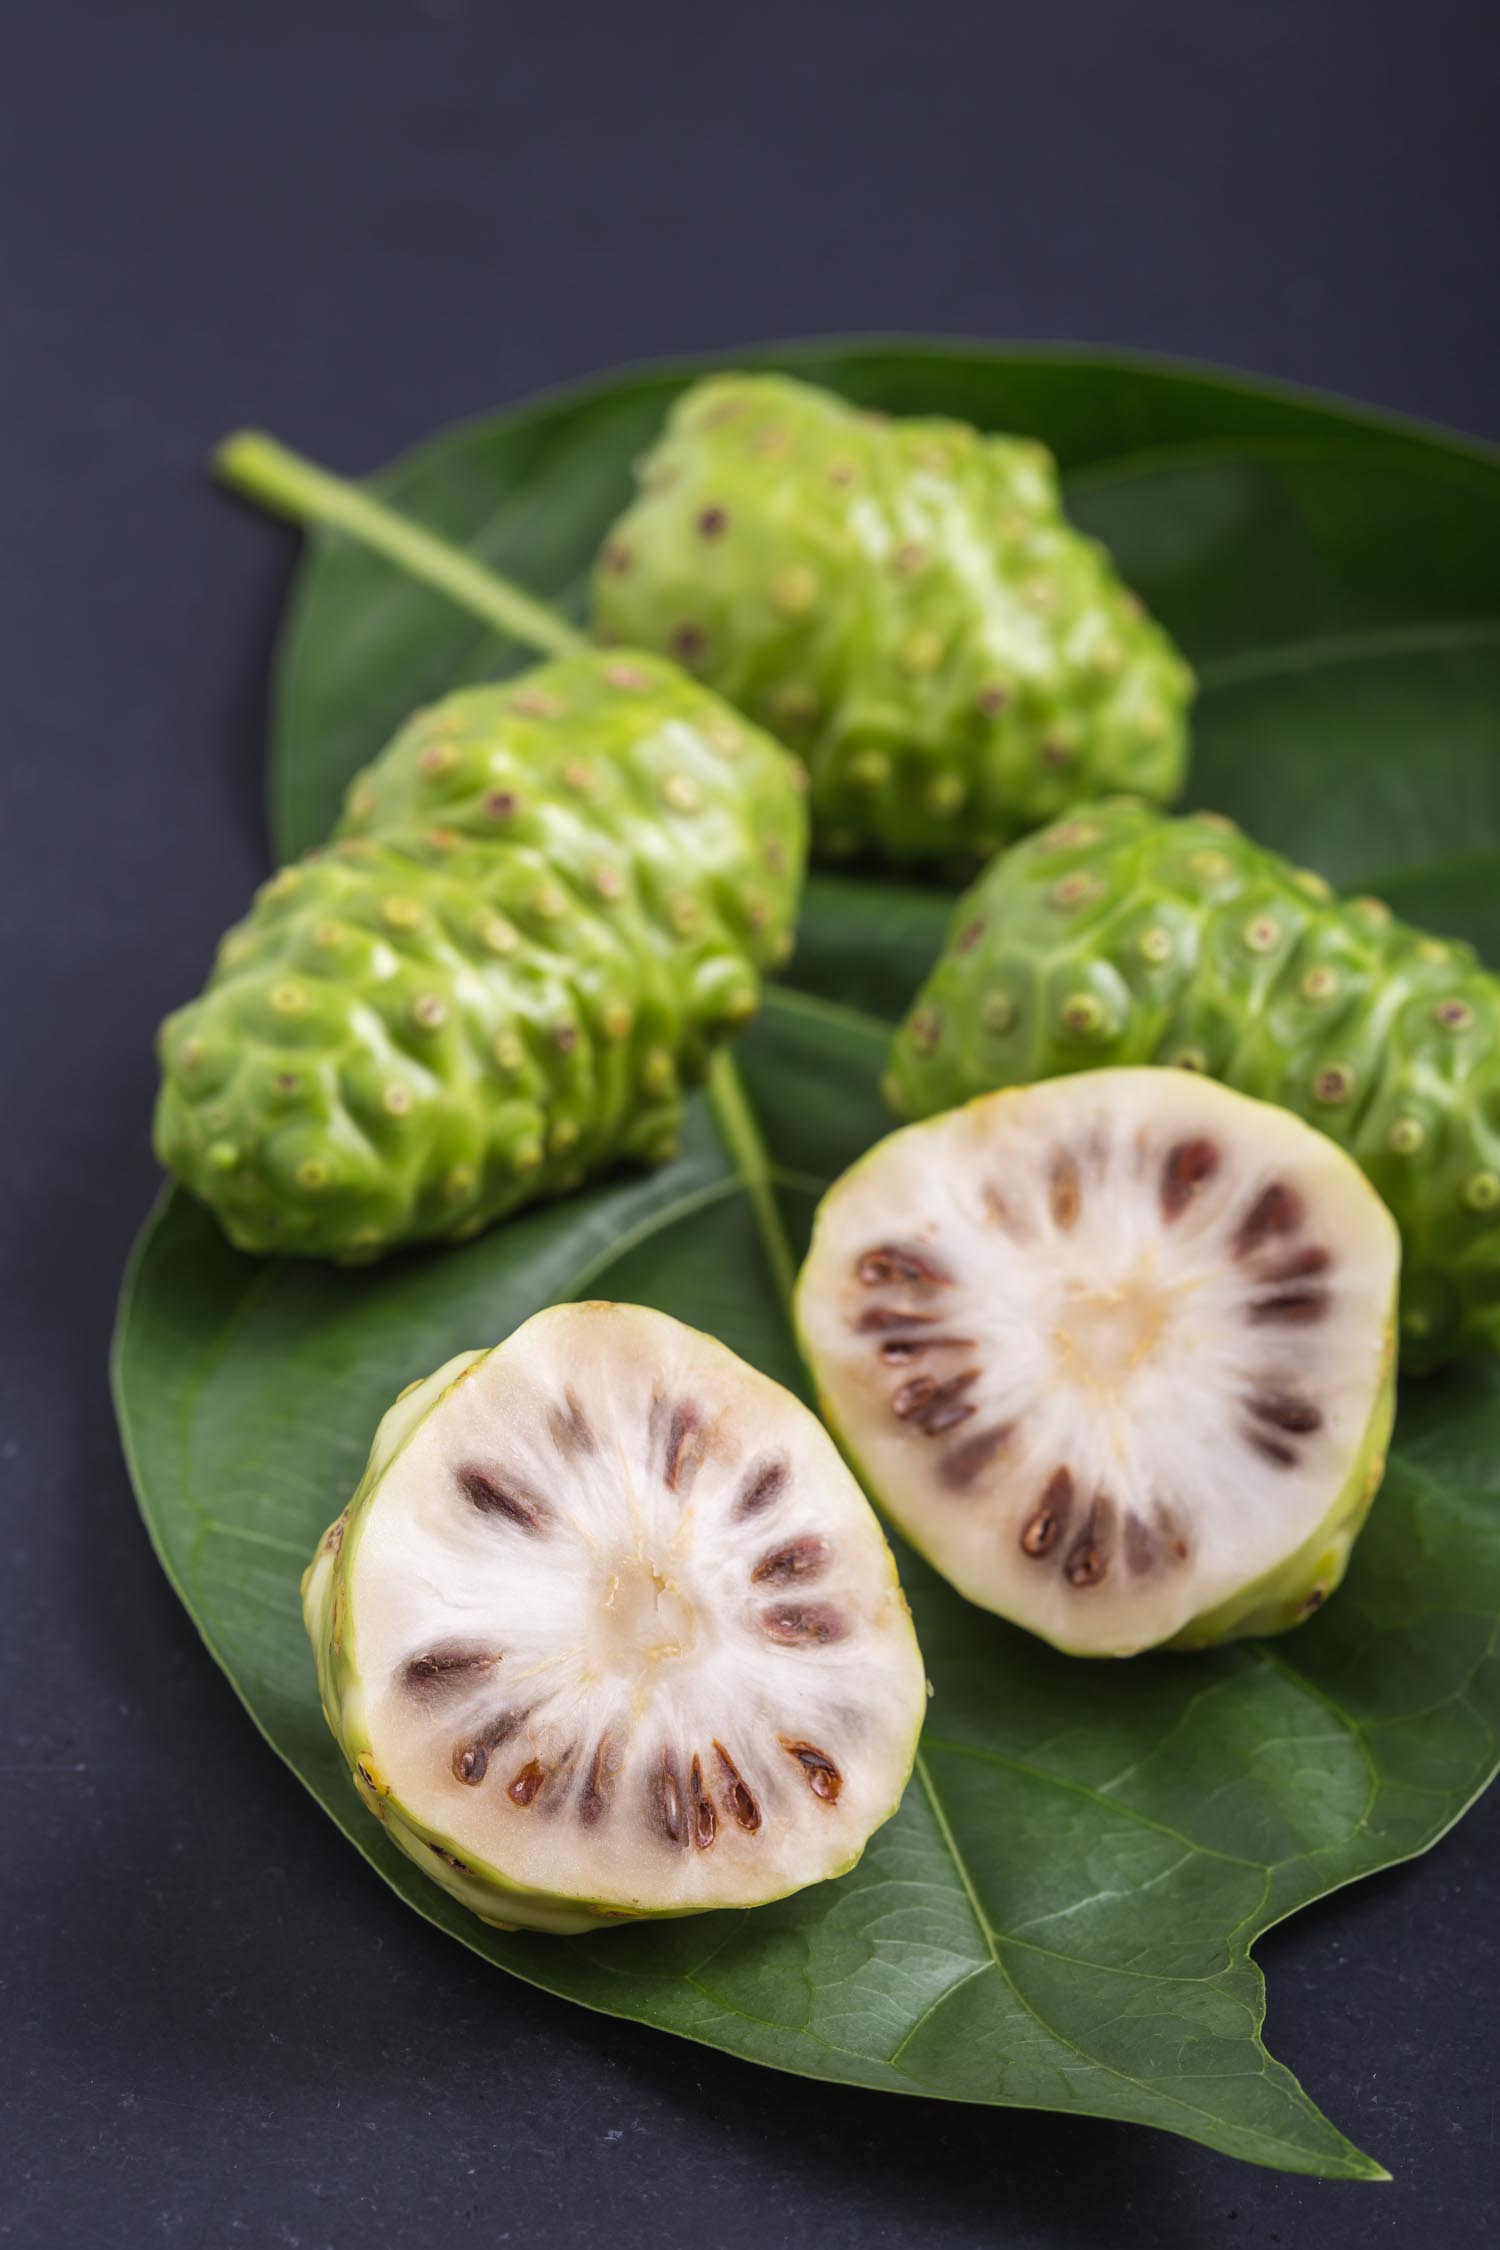 Fruit of Great morinda (Peru fruit Noni) or Morinda citrifolia tree and green leaf on black stone board background